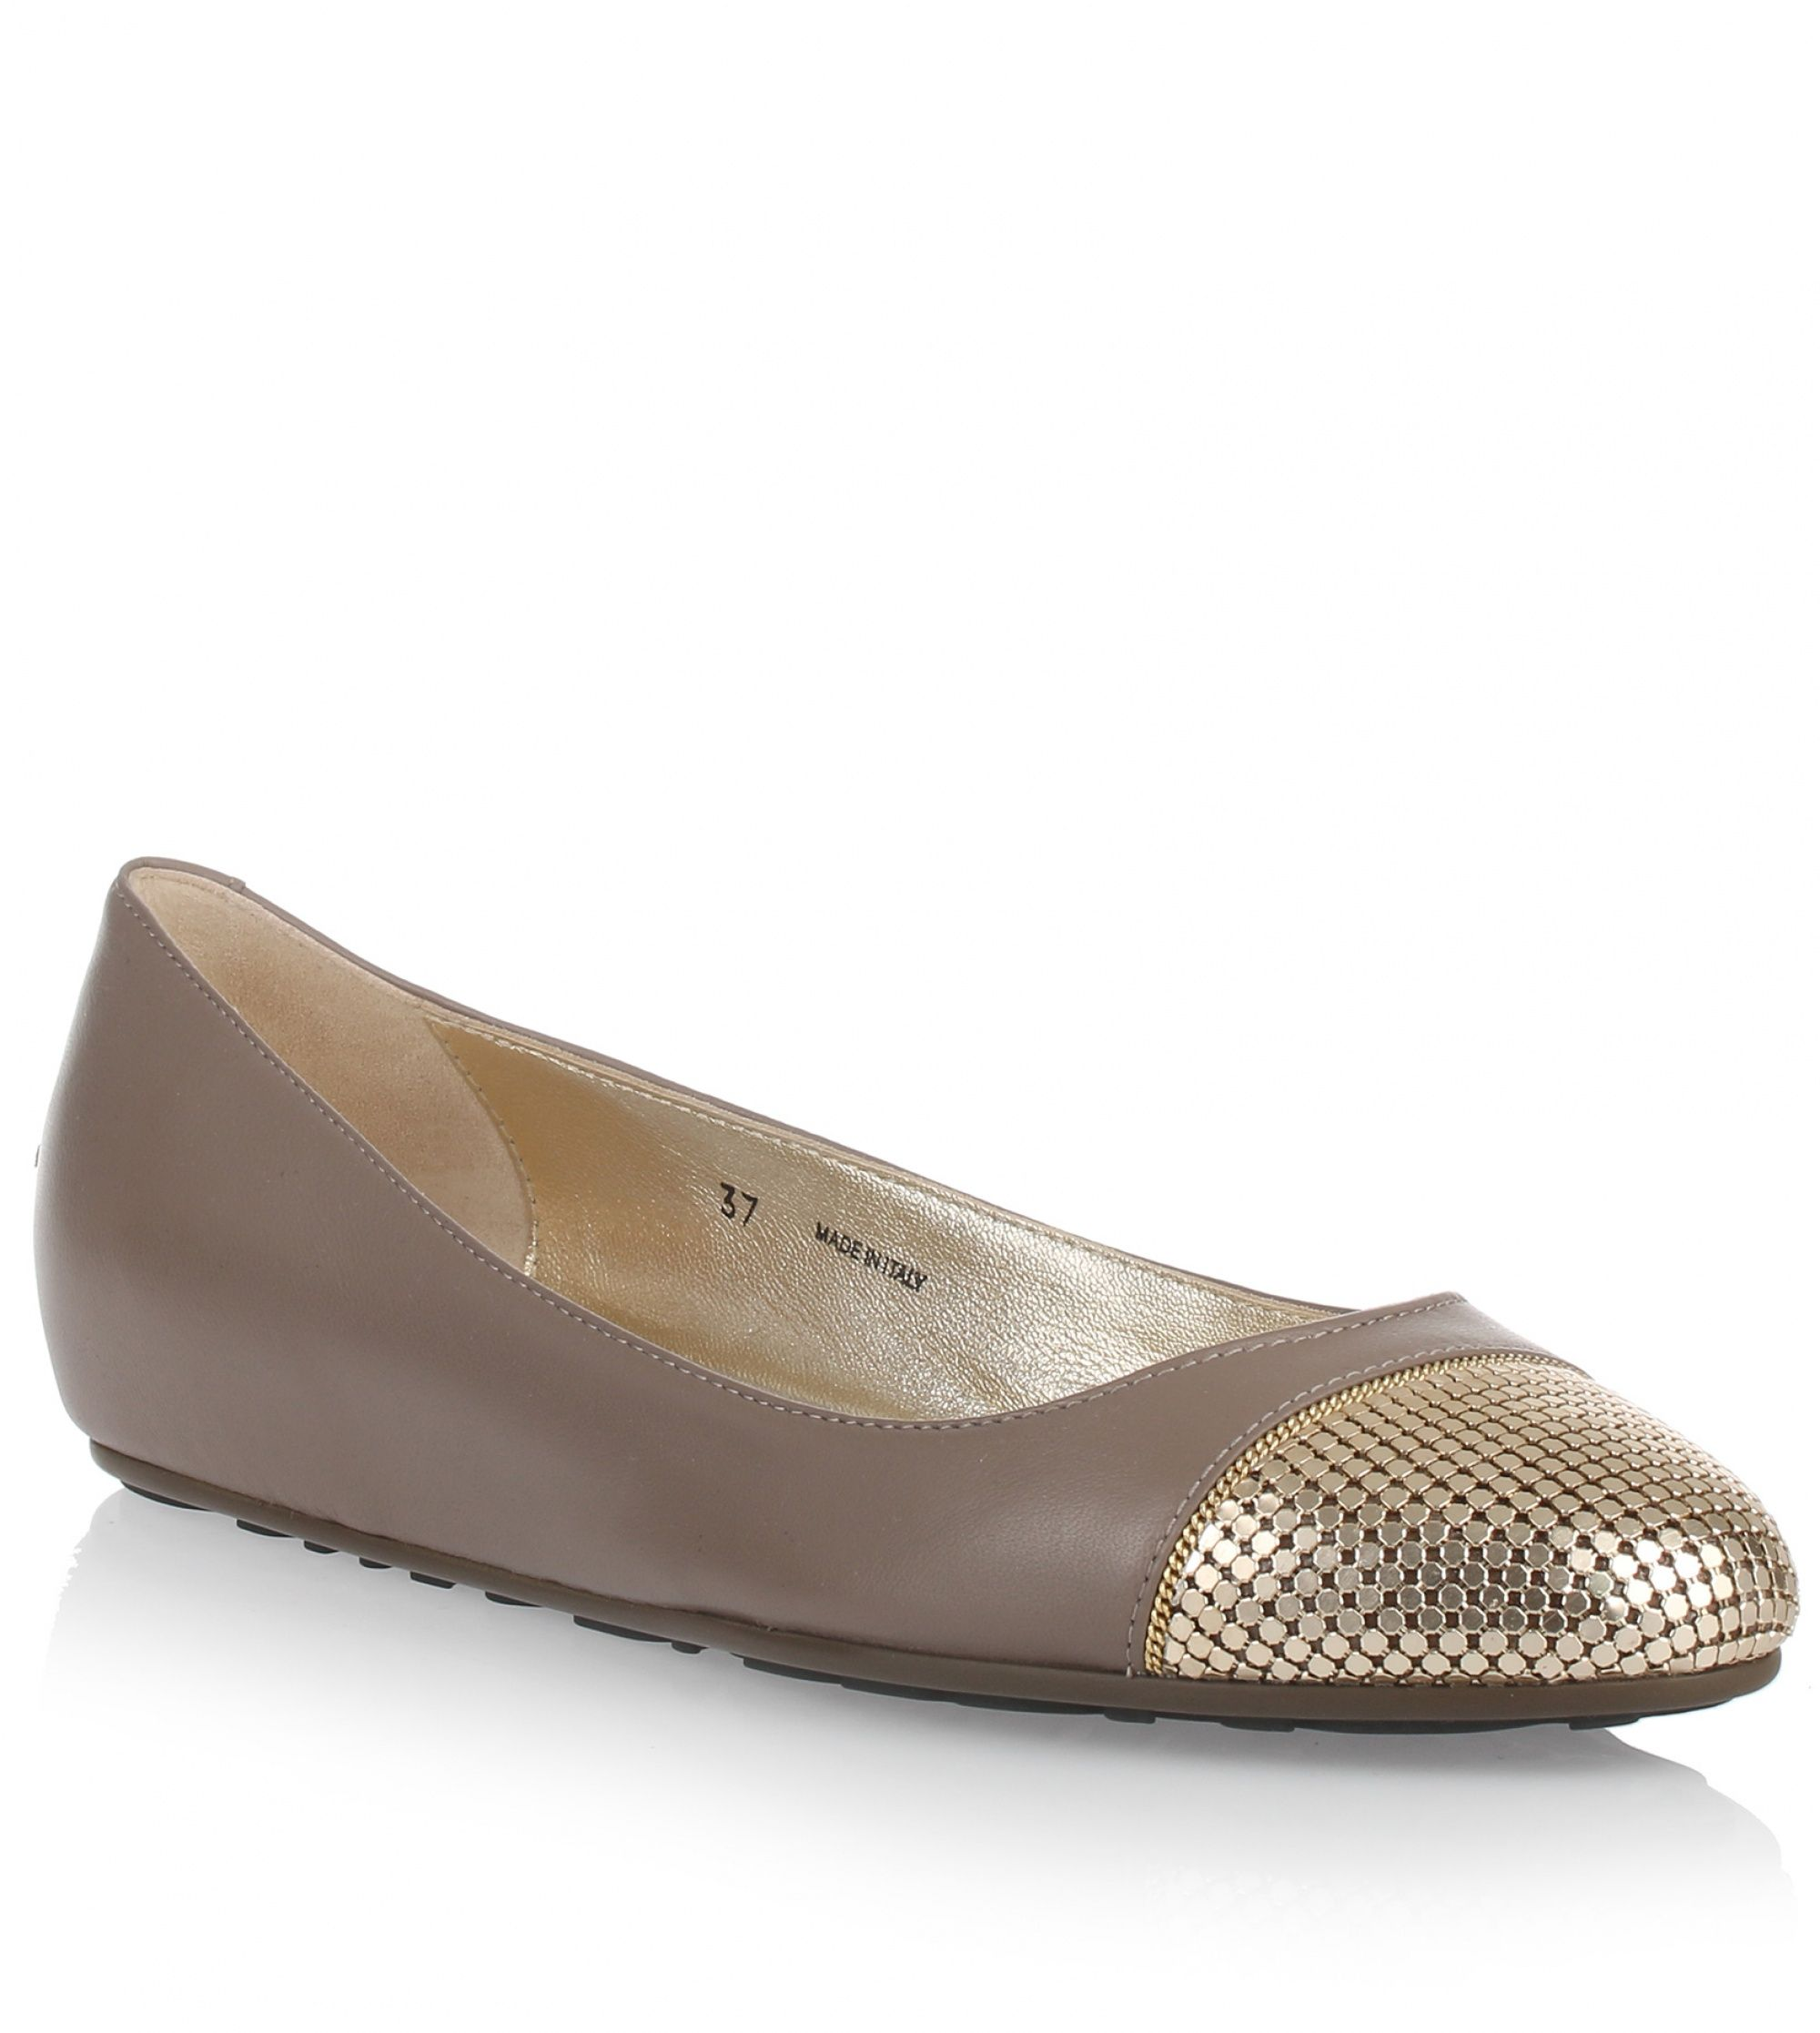 Jimmy Choo Waine taupe leather ballerina US$ 575   Taupe leather ballerina from Jimmy Choo. The Waine ballerina has a gold-tone mesh metal covered toe, a gold-tone chain, and a rubber sole.True to sizeRubber soleMade in ItalyDesigner colour: Mink